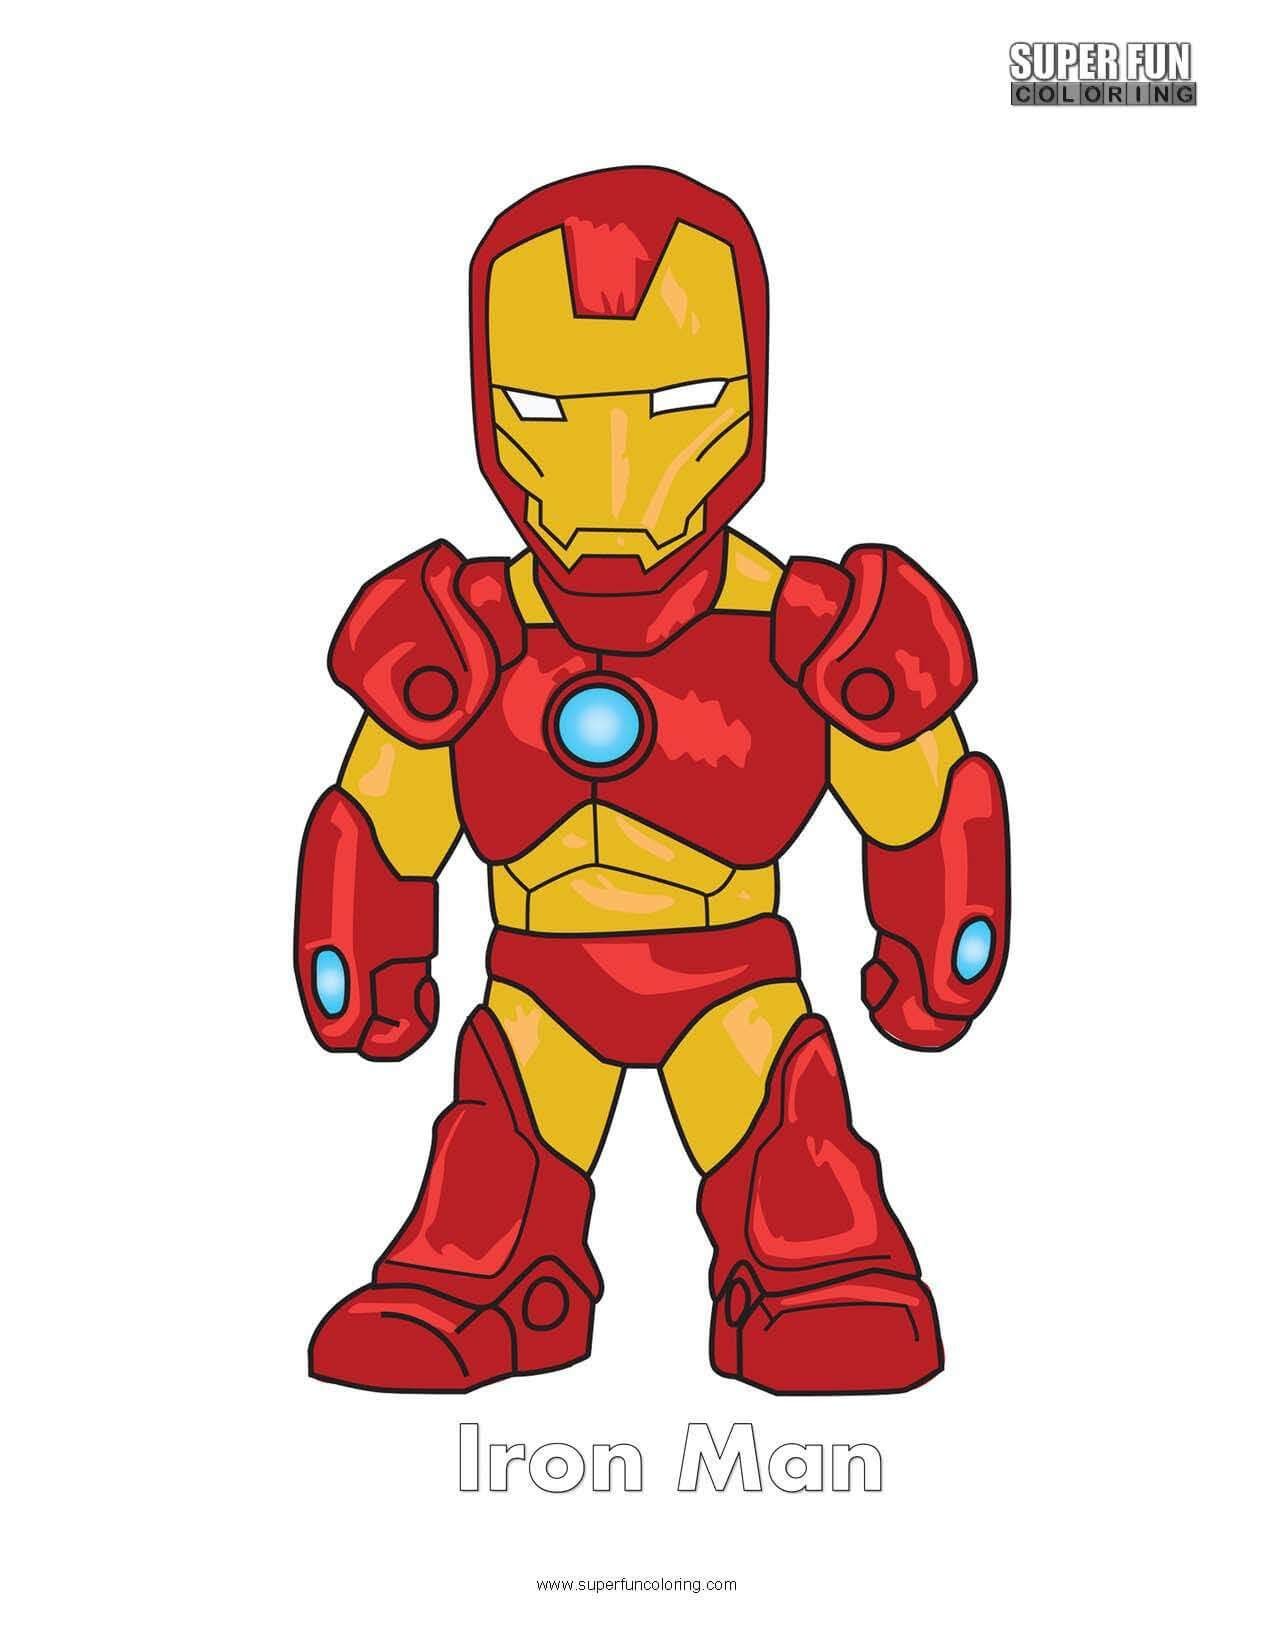 Iron Man Free Superhero Coloring Page | Super Fun Coloring Pages ...